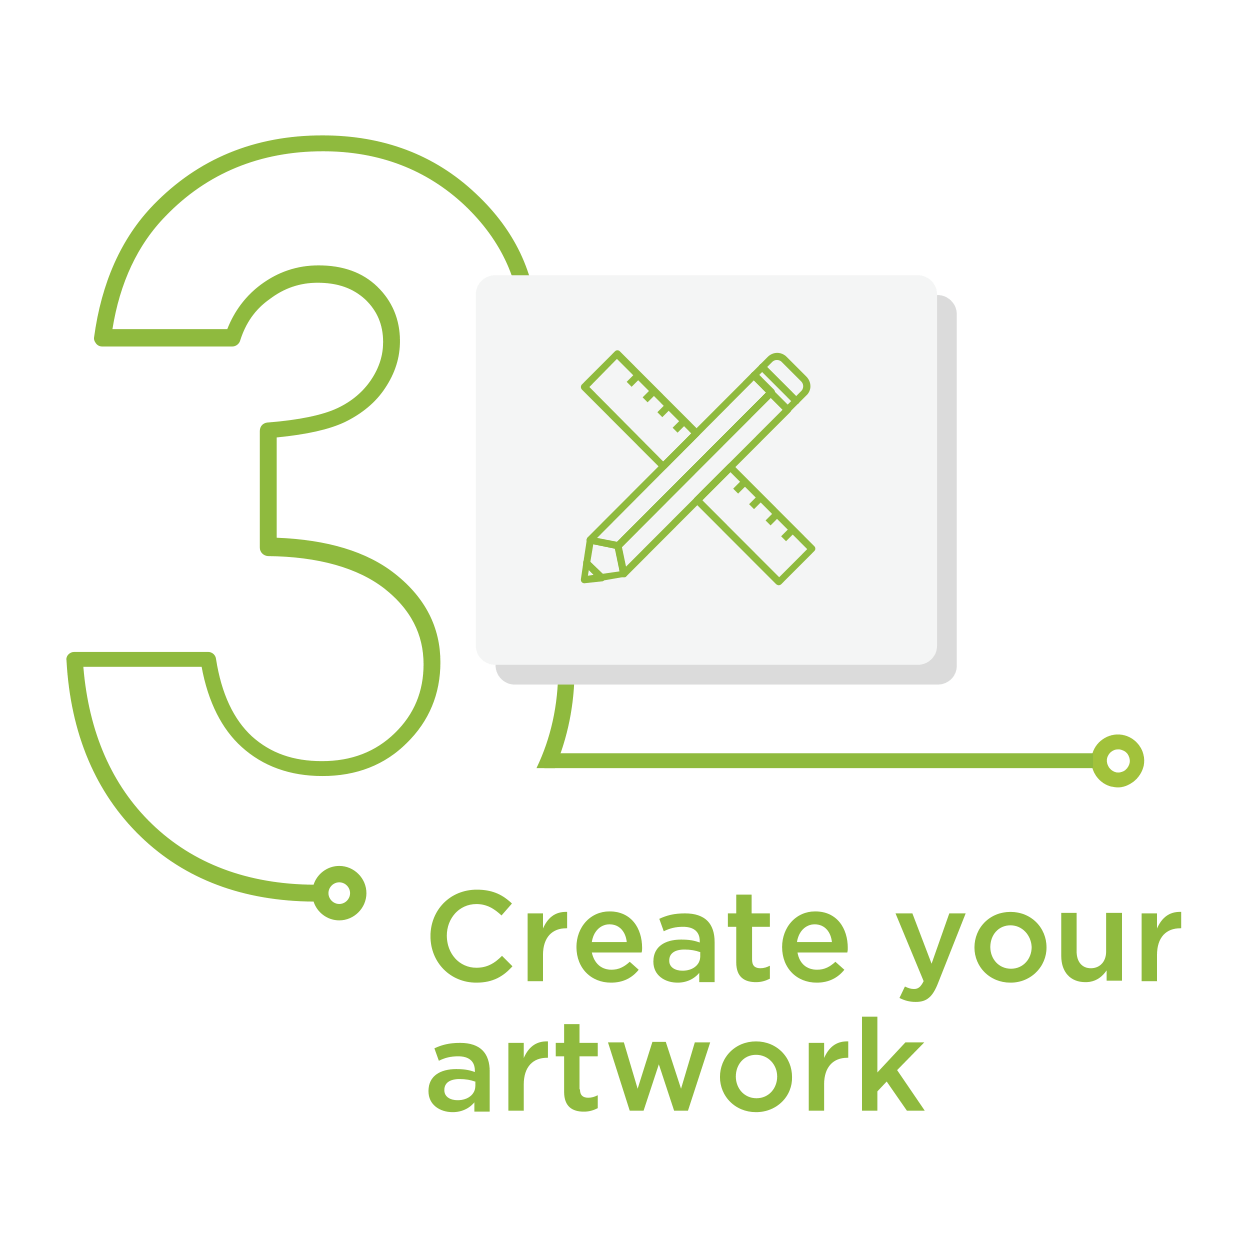 Step 3 - Create your artwork